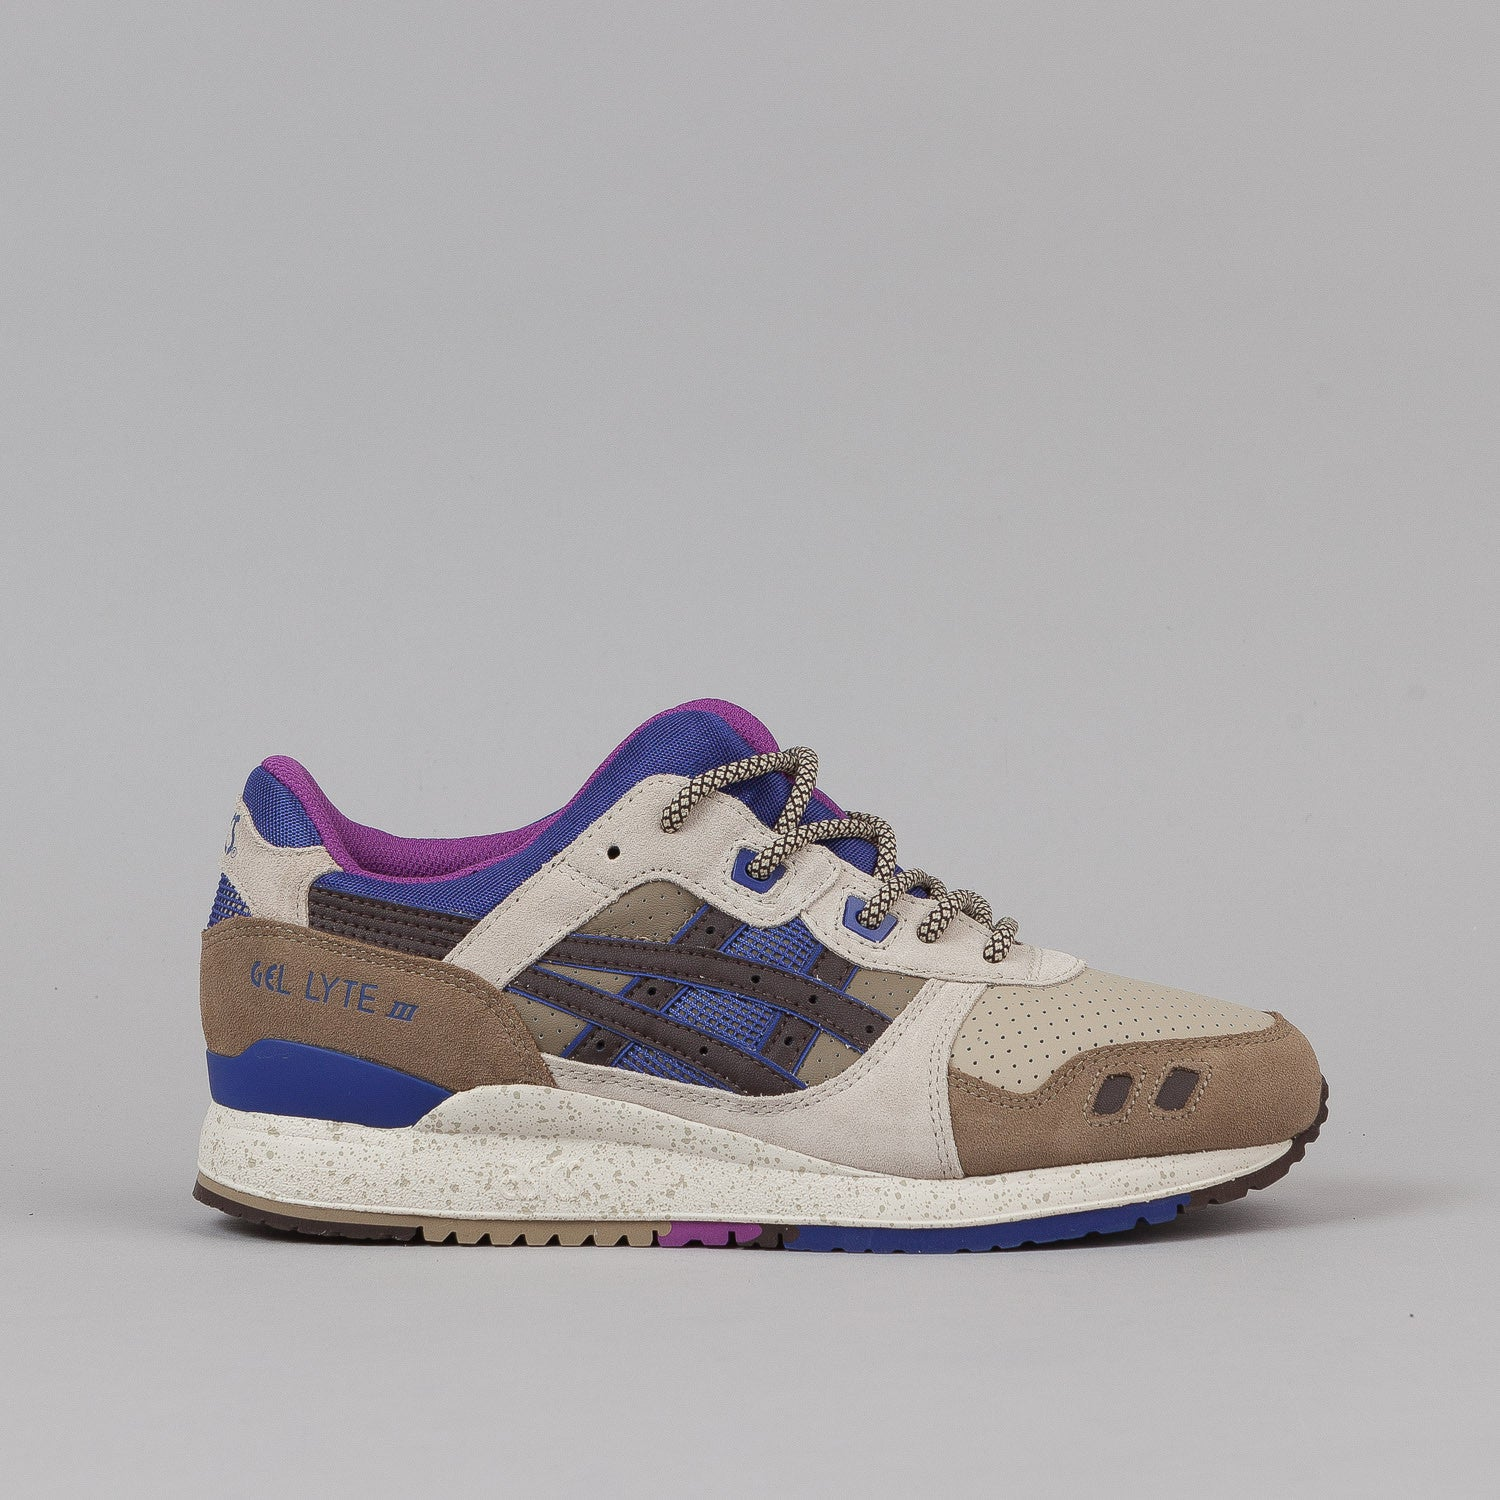 Asics Gel Lyte III Shoes 'Outdoor'